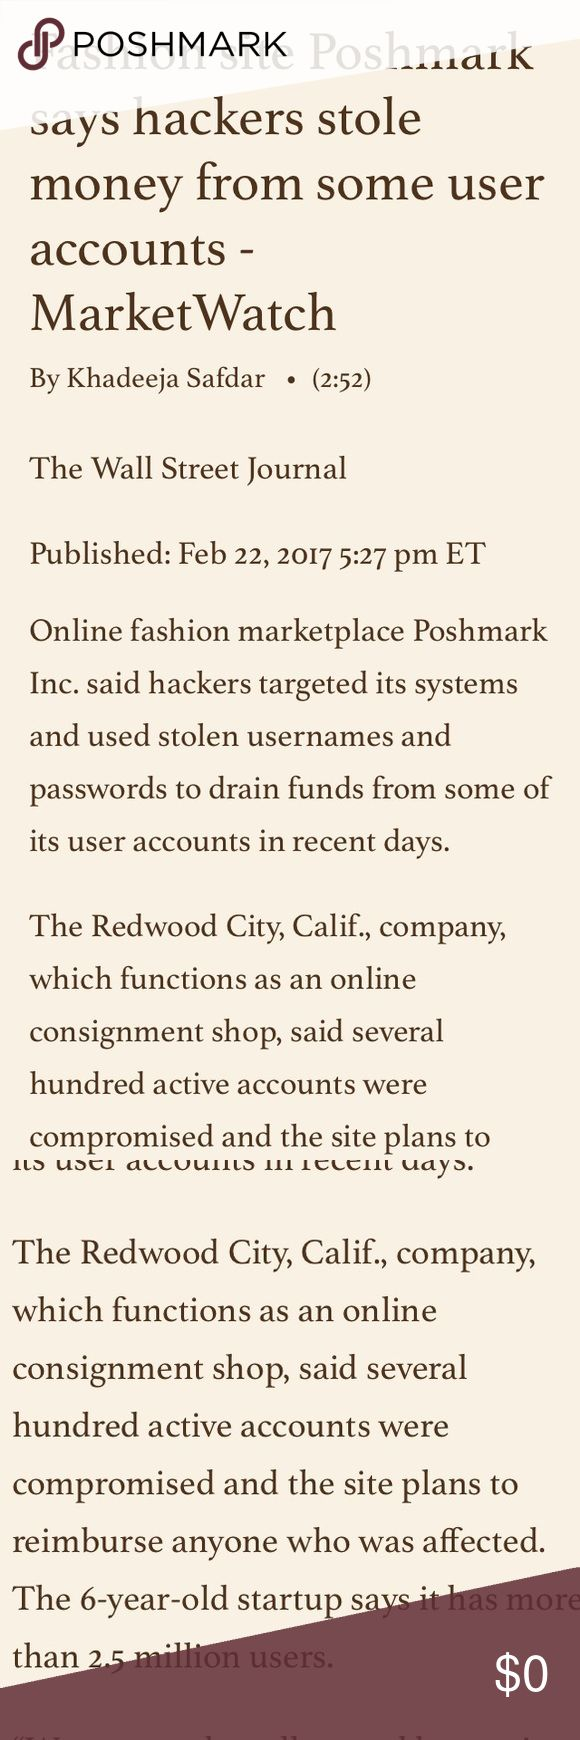 ‼️HACKERS ARE BACK‼️ MAY 7 2017 ❌NEVER TAKE TRANSACTIONS OUTSIDE POSHMARK❌      1. Google the email address they provided. Most of the time you will find they have contacted a few people.      2. Report to Poshmark immediately by going to the fake account page.      3. Click the box with arrow pointing up on the top right hand corner.      4. Click report as Spam. Block User.      5. Take a screen shot of the scammer message in your closet, then email it to support@poshmark.com. Other